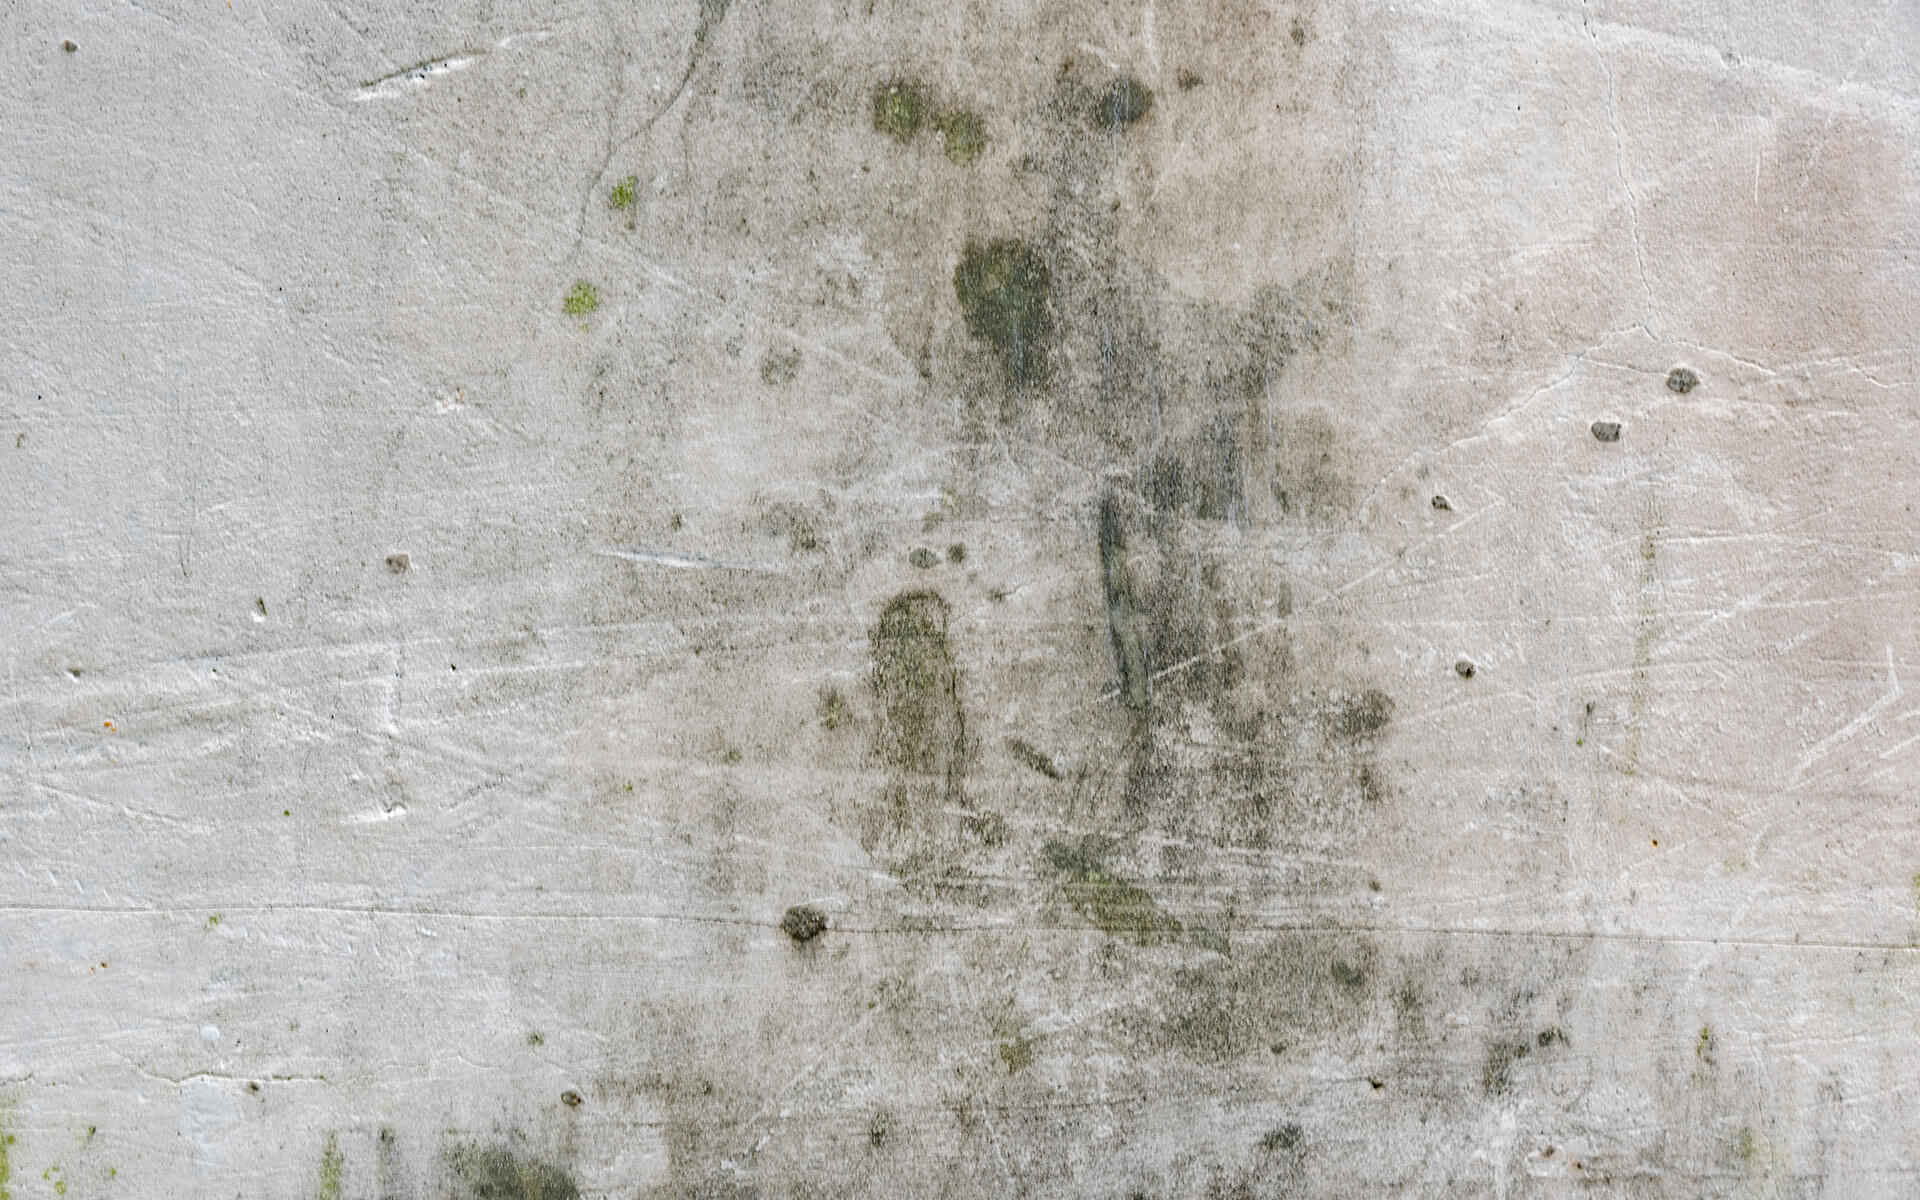 Mold vs Mildew - What's the difference and what should you do - San Antonio Roofing